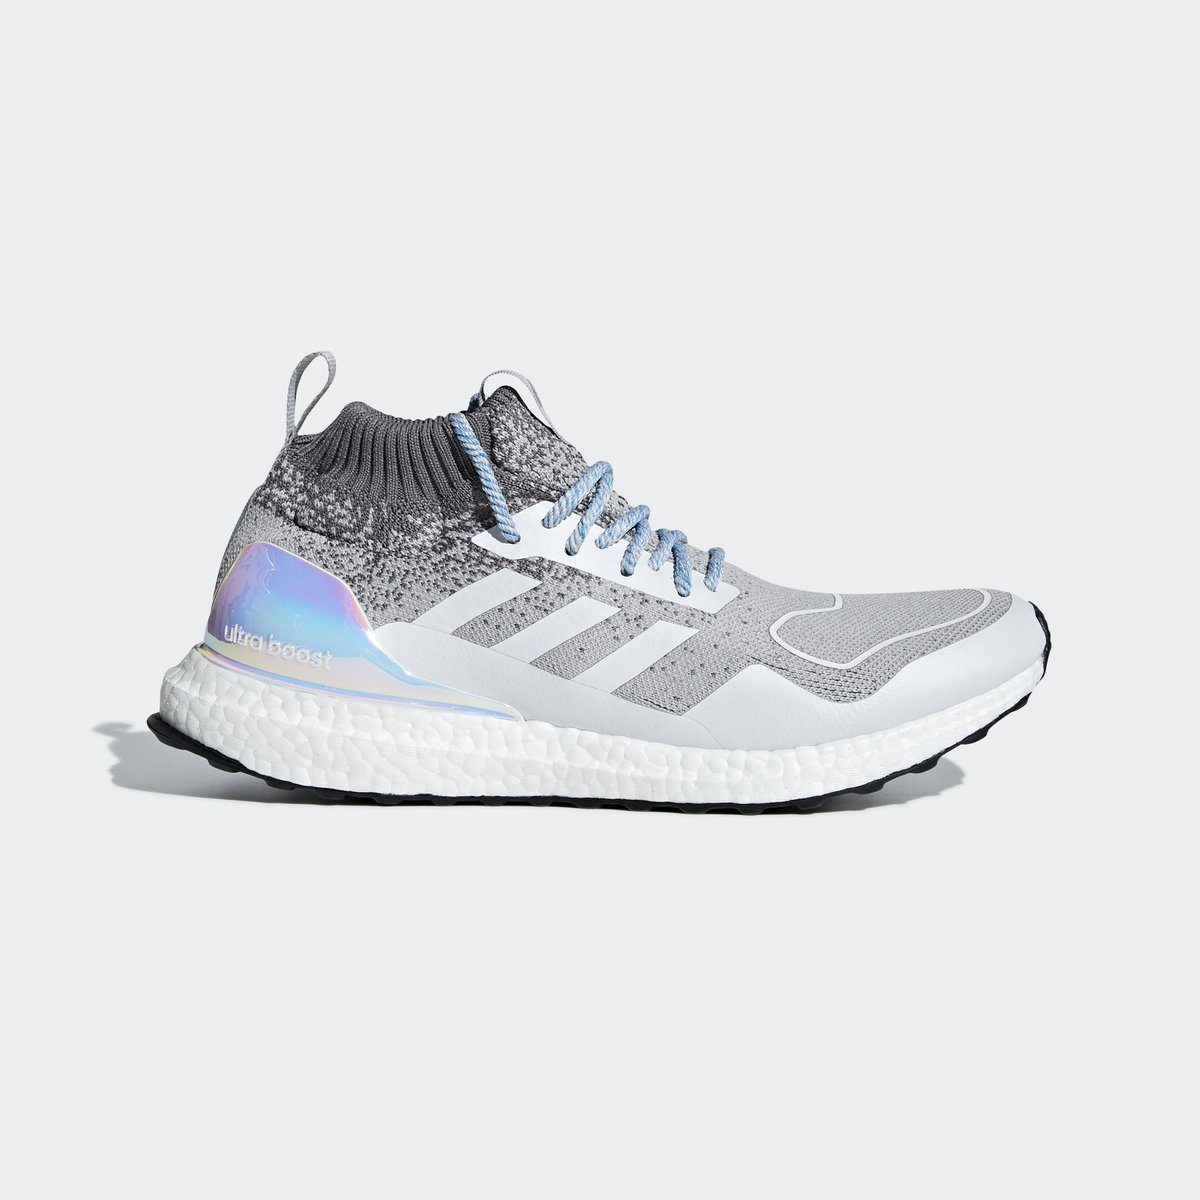 bf6fd50de23ed Price reduced on  adidas US. adidas Ultra Boost Mid Light Granite. Retail   180. Now  144 shipped. —  http   bit.ly 2v0HVYs   adpic.twitter.com 4nDqzLQ6cw